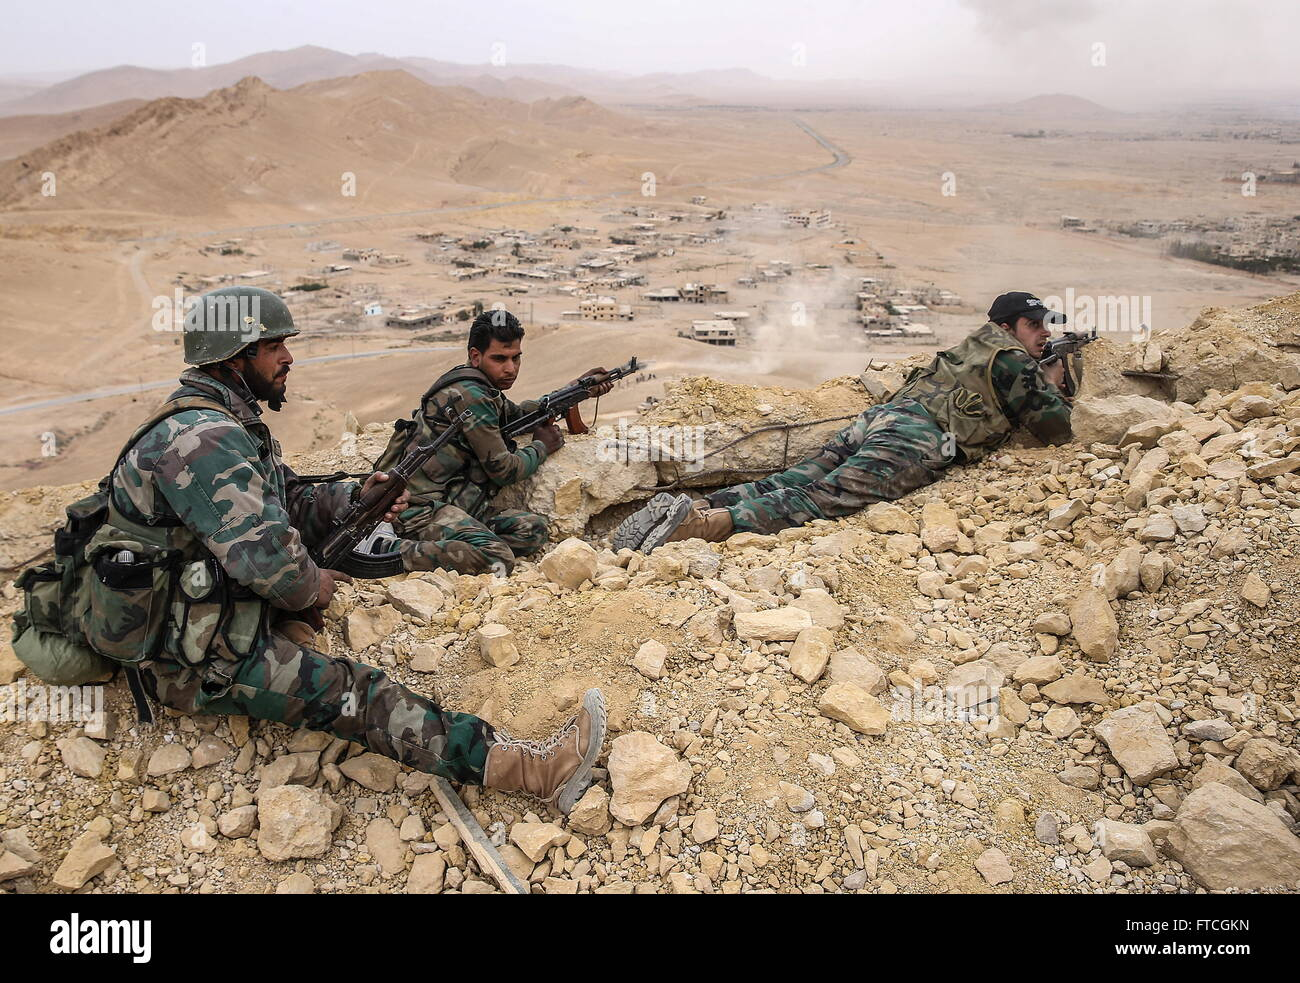 Palmyria, Syria. 26th Mar, 2016. Syrian government army soldiers take a position on top of Fakhr al-Din al-Maani - Stock Image